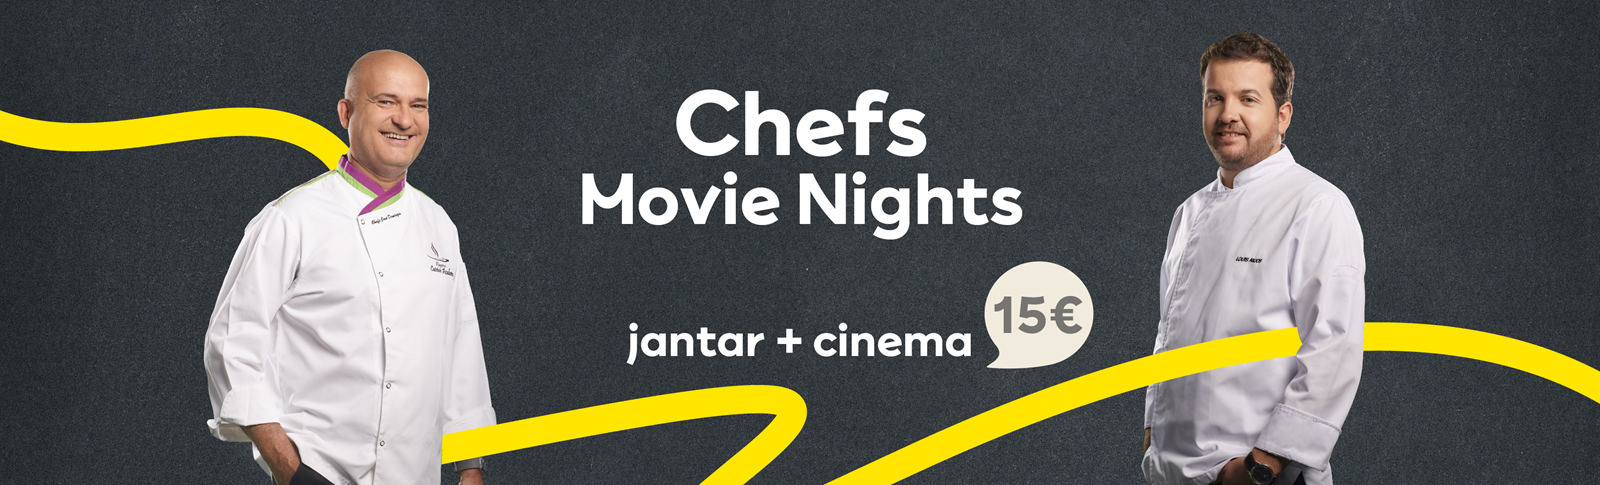 chefs movie nights